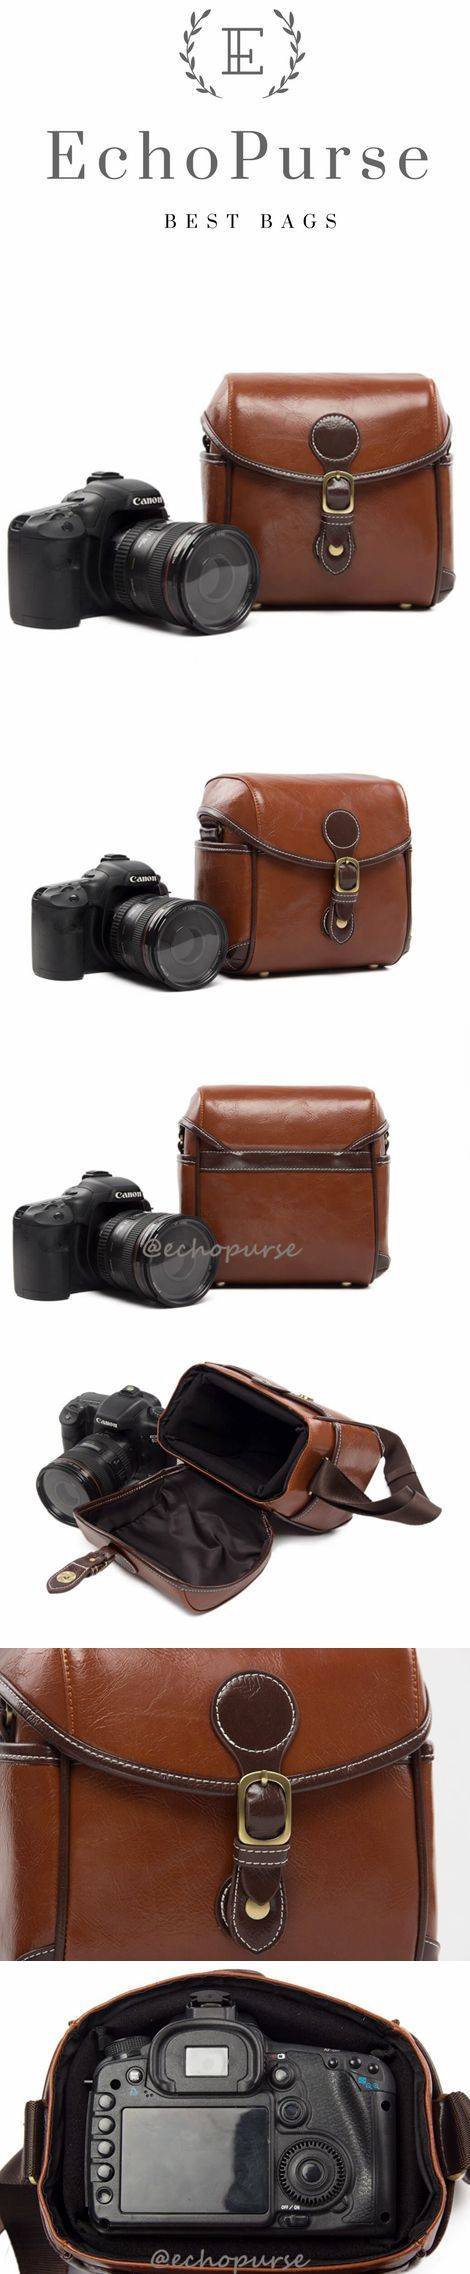 Hot Sale PU Leather DSLR Camera Purse, Vintage Brown SLR Camera Case 288 #camerapurse